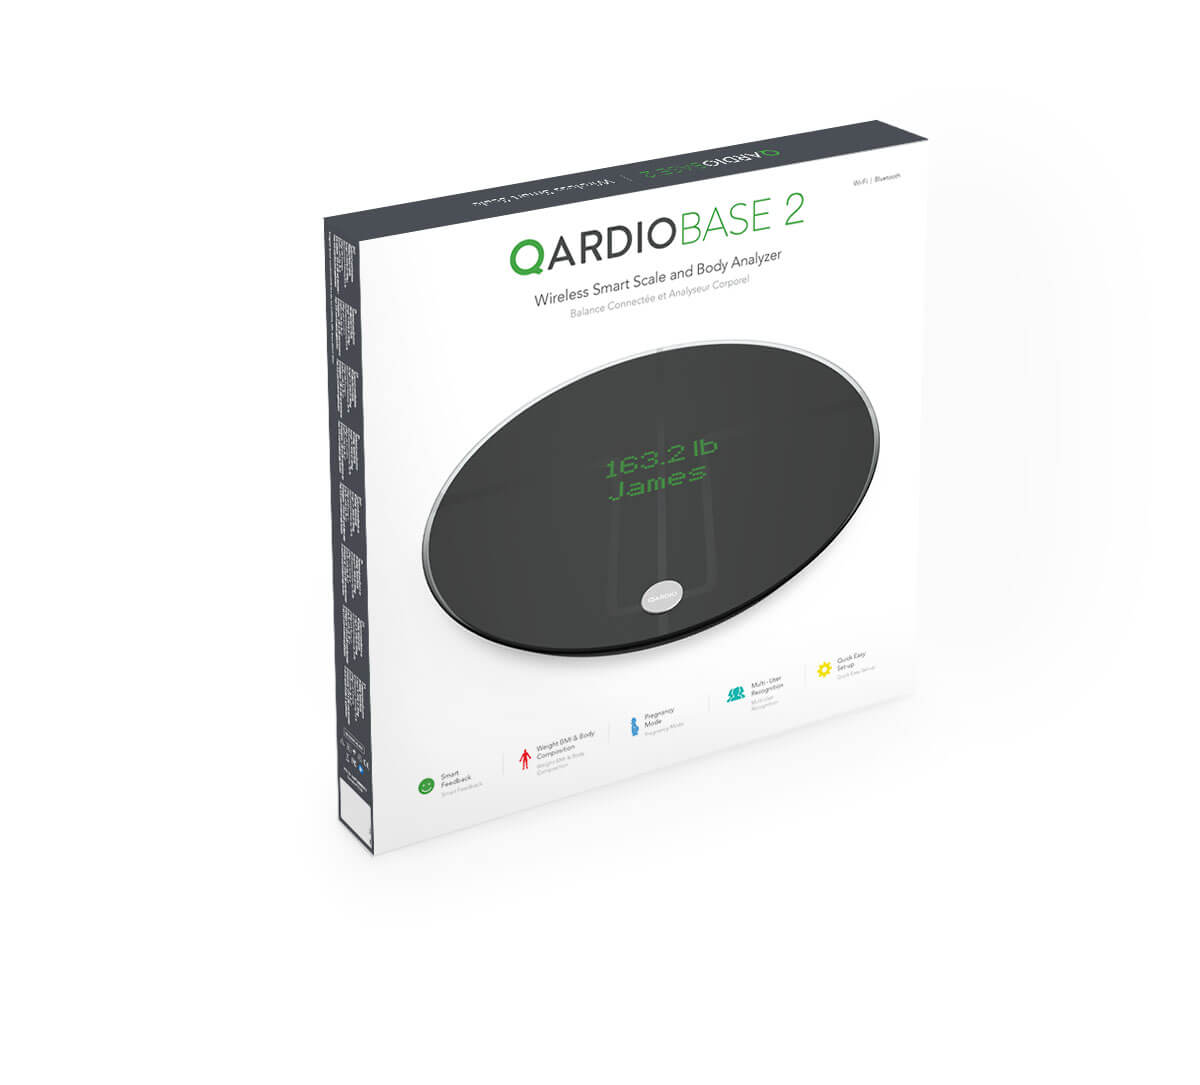 QardioBase Wi-Fi Smart Scale by Qardio